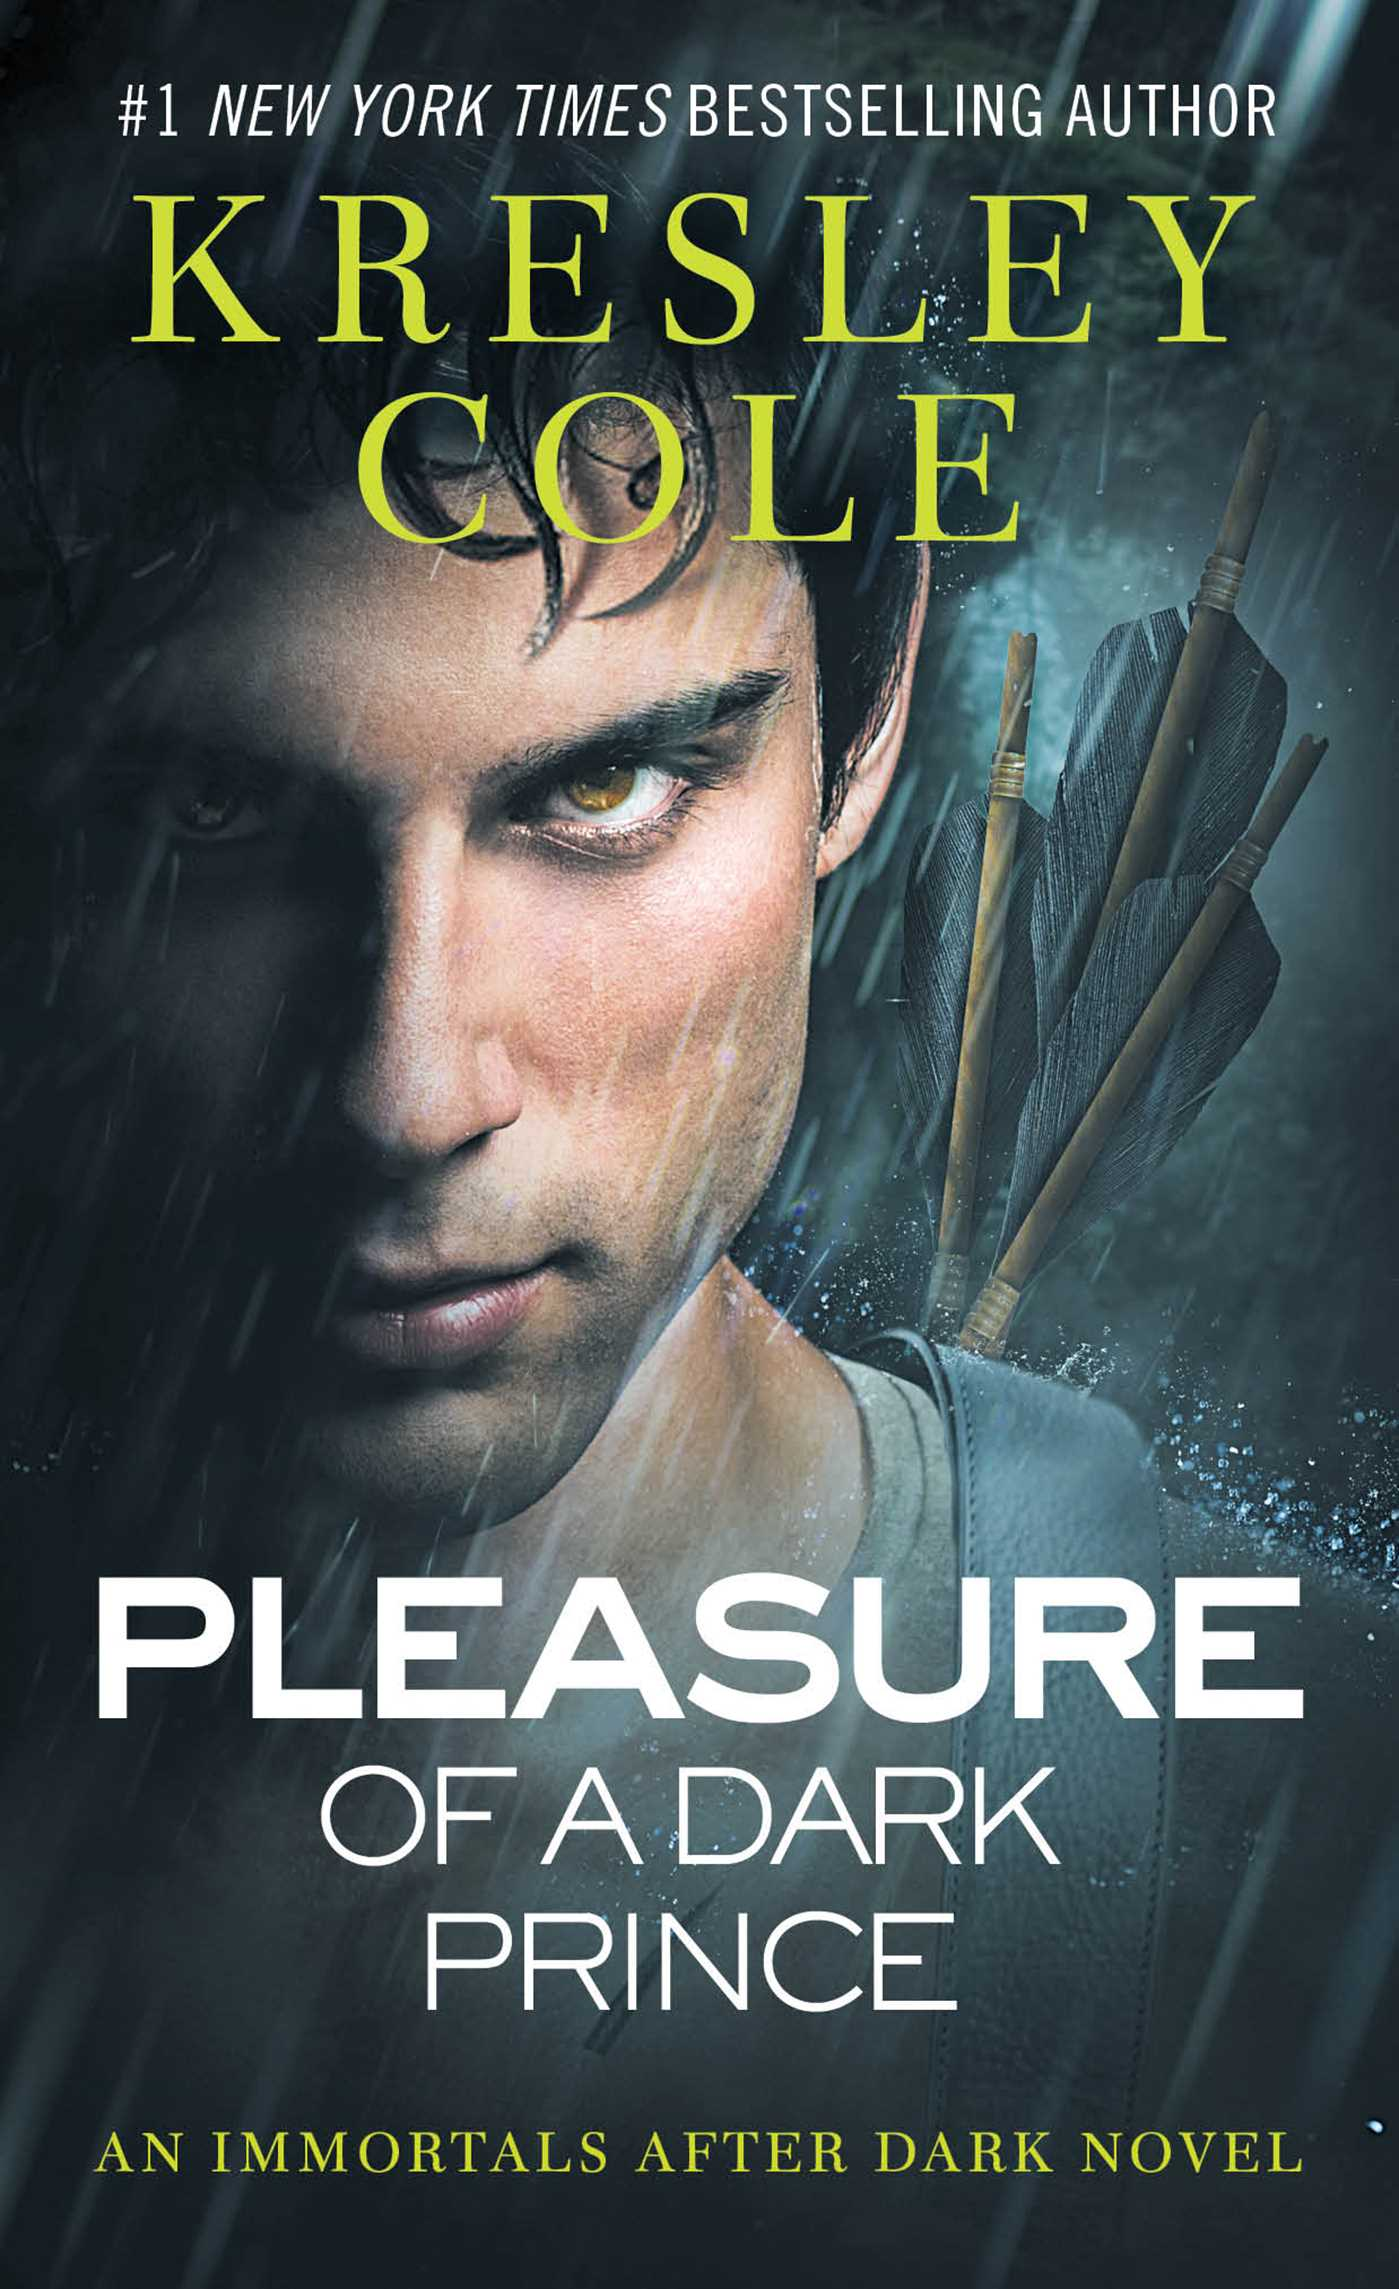 Kresley cole official publisher page simon schuster uk book cover image jpg pleasure of a dark prince fandeluxe Images